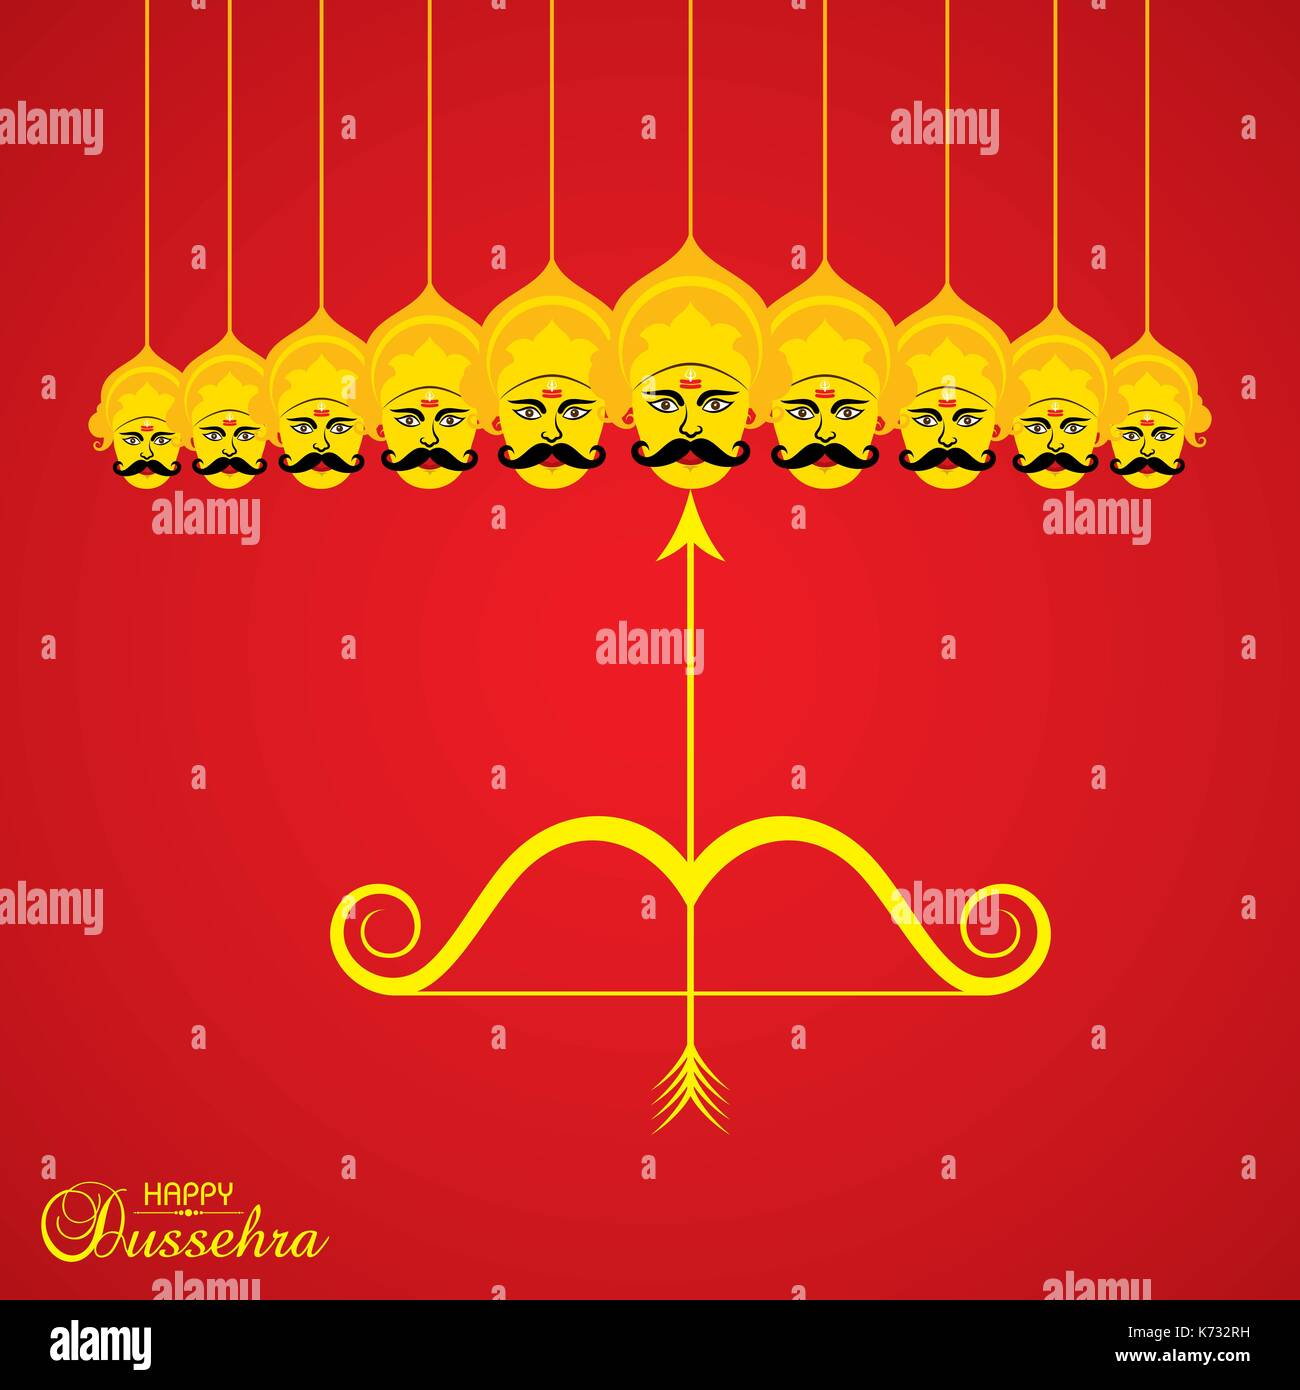 Dussehra stock photos dussehra stock images alamy dussehra festival greeting or poster design stock stock image kristyandbryce Images